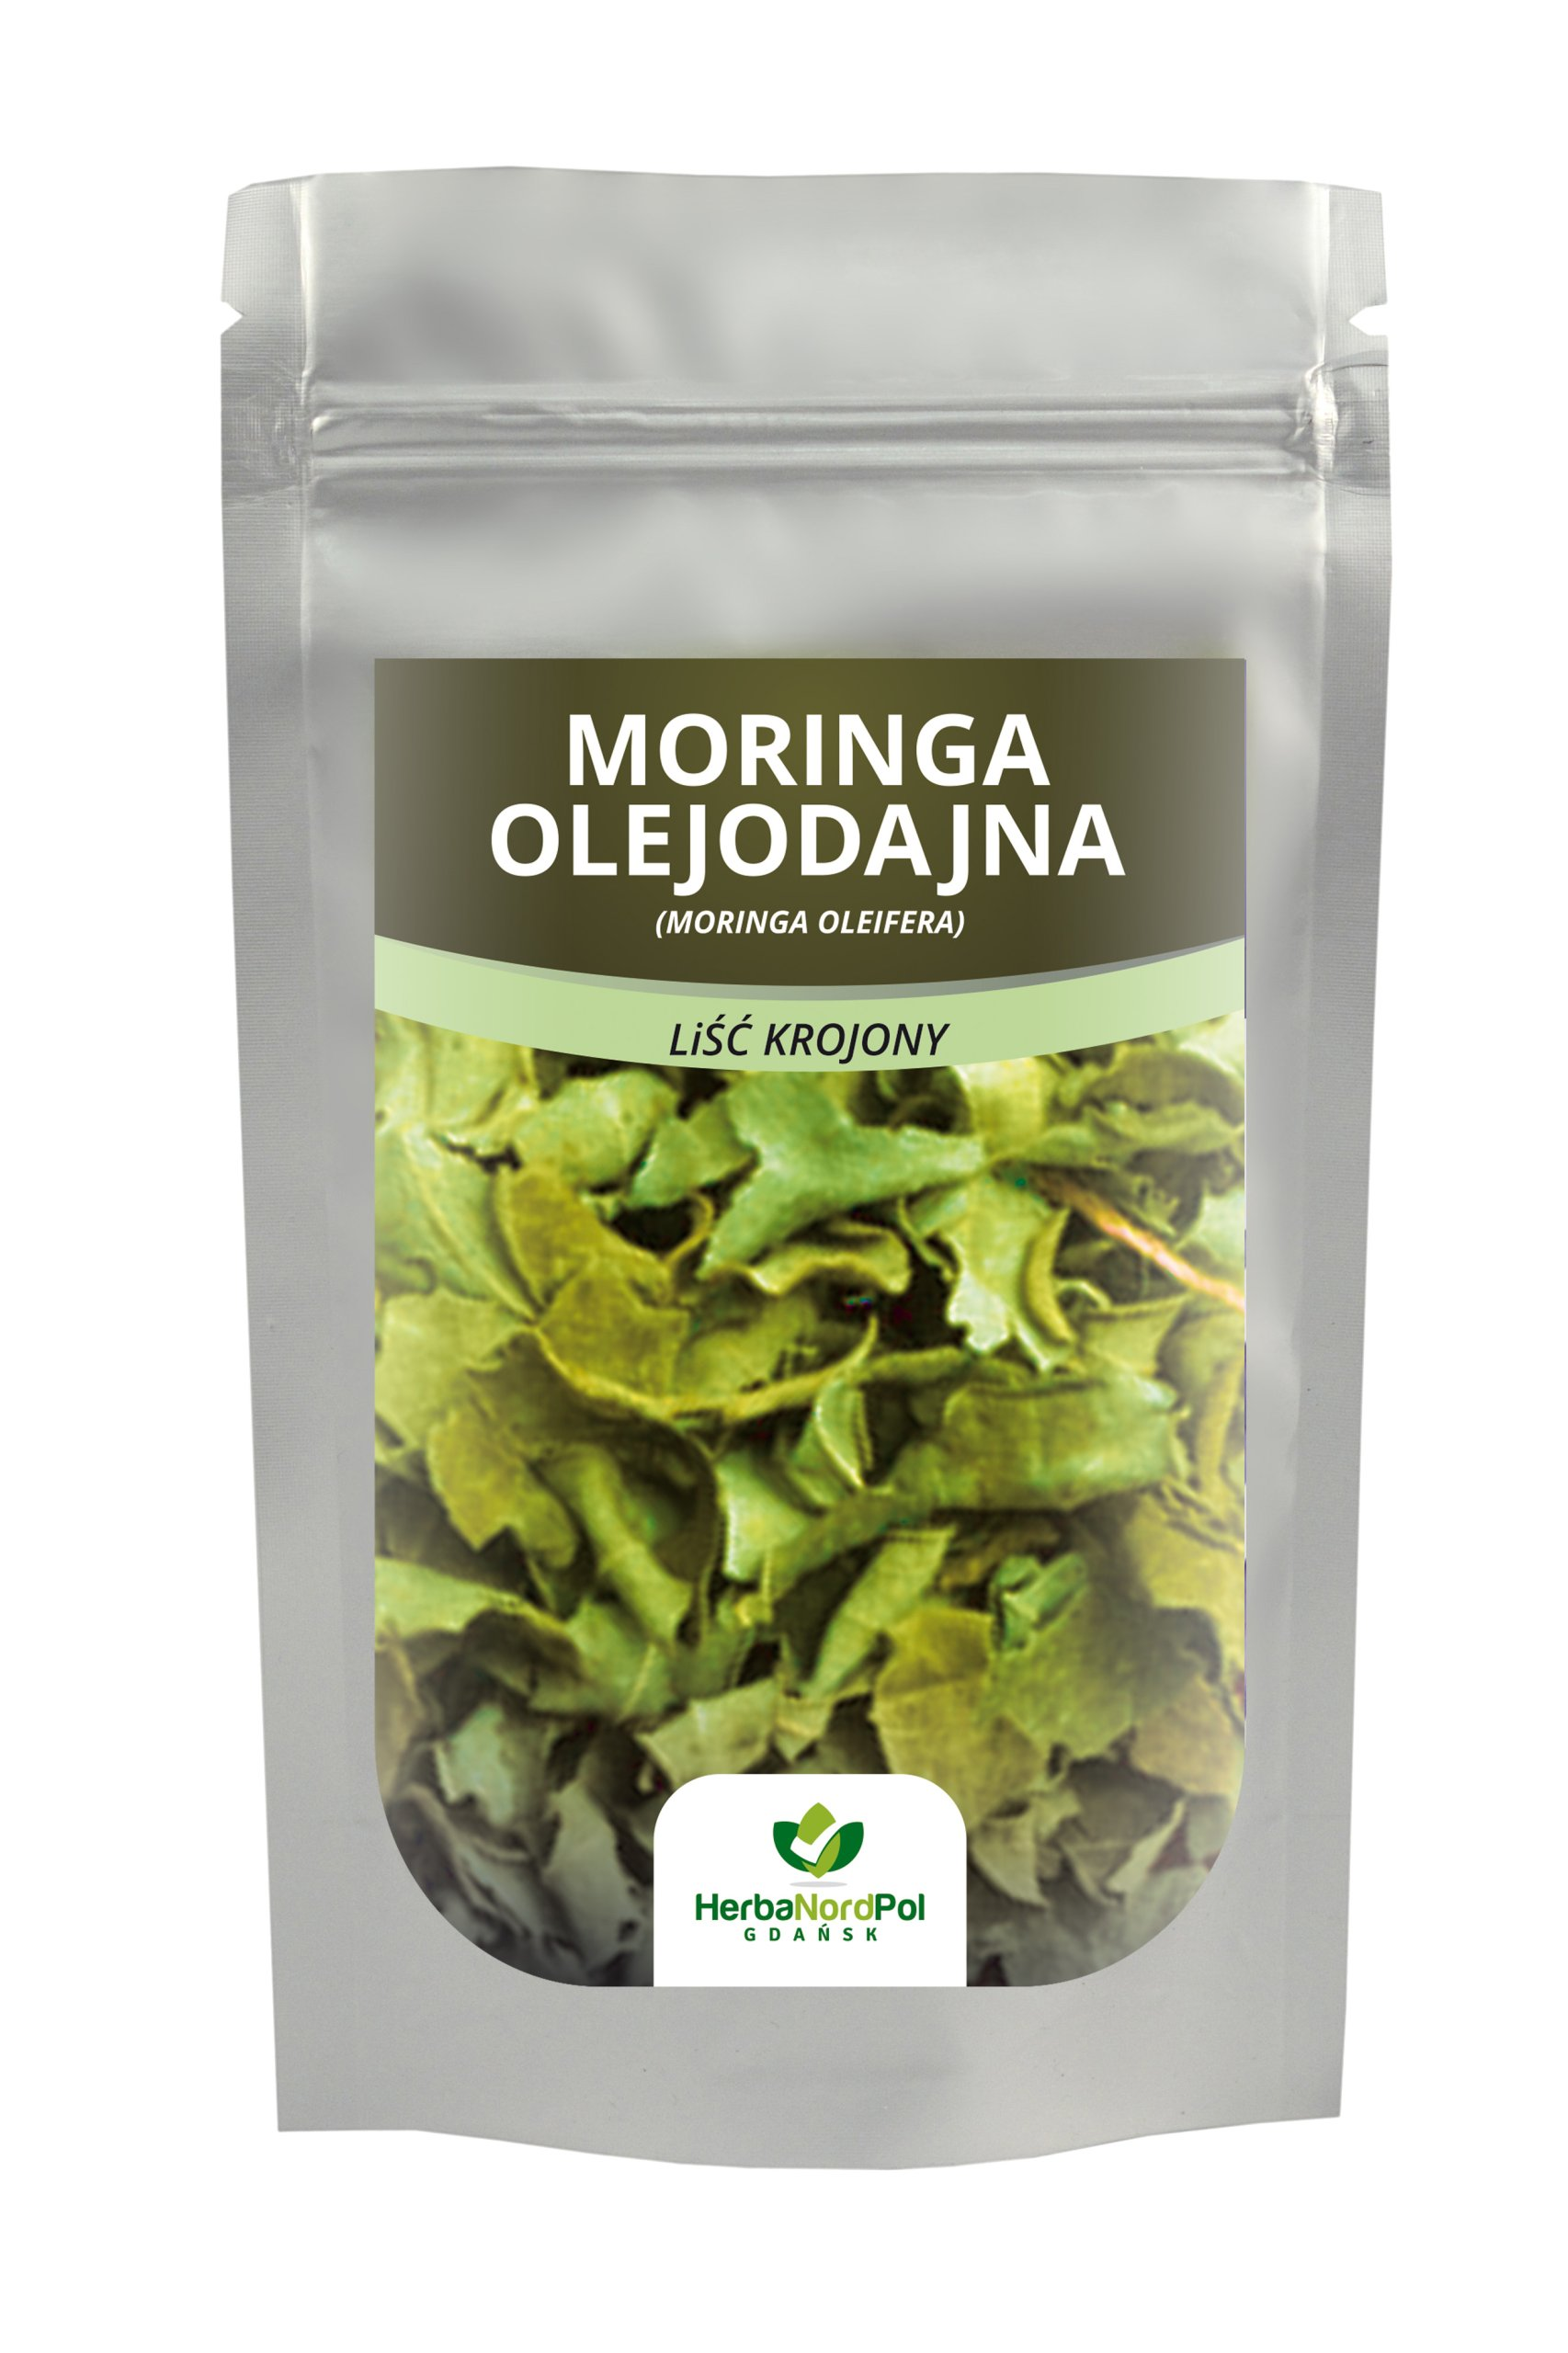 Item Olejodajna Moringa Leaf, Slices 500G - Egyptian